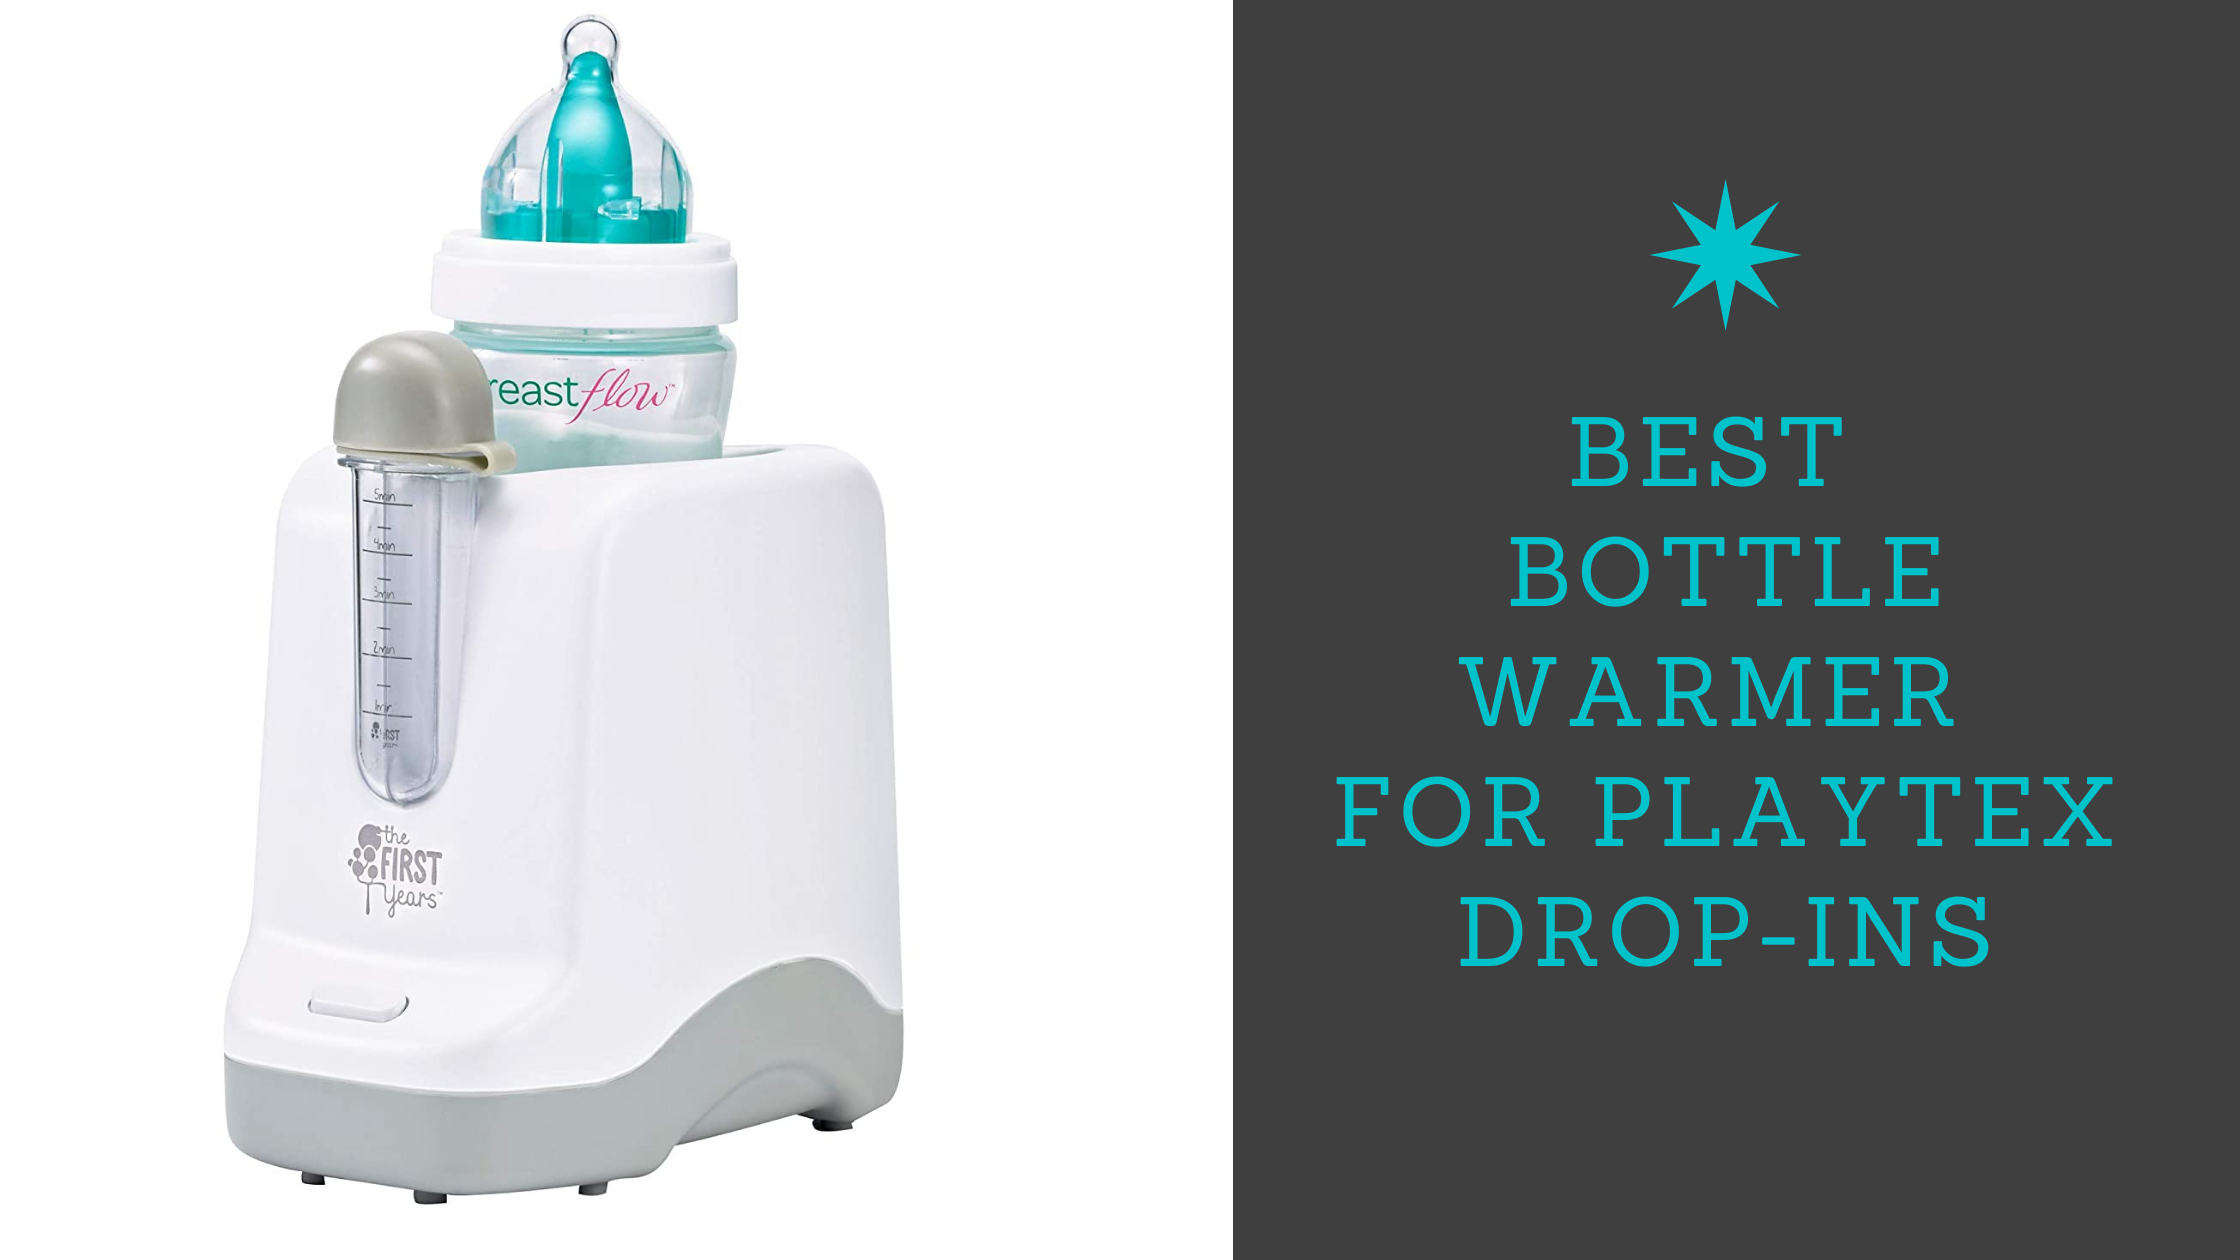 Best Bottle Warmer For Playtex Drop-Ins